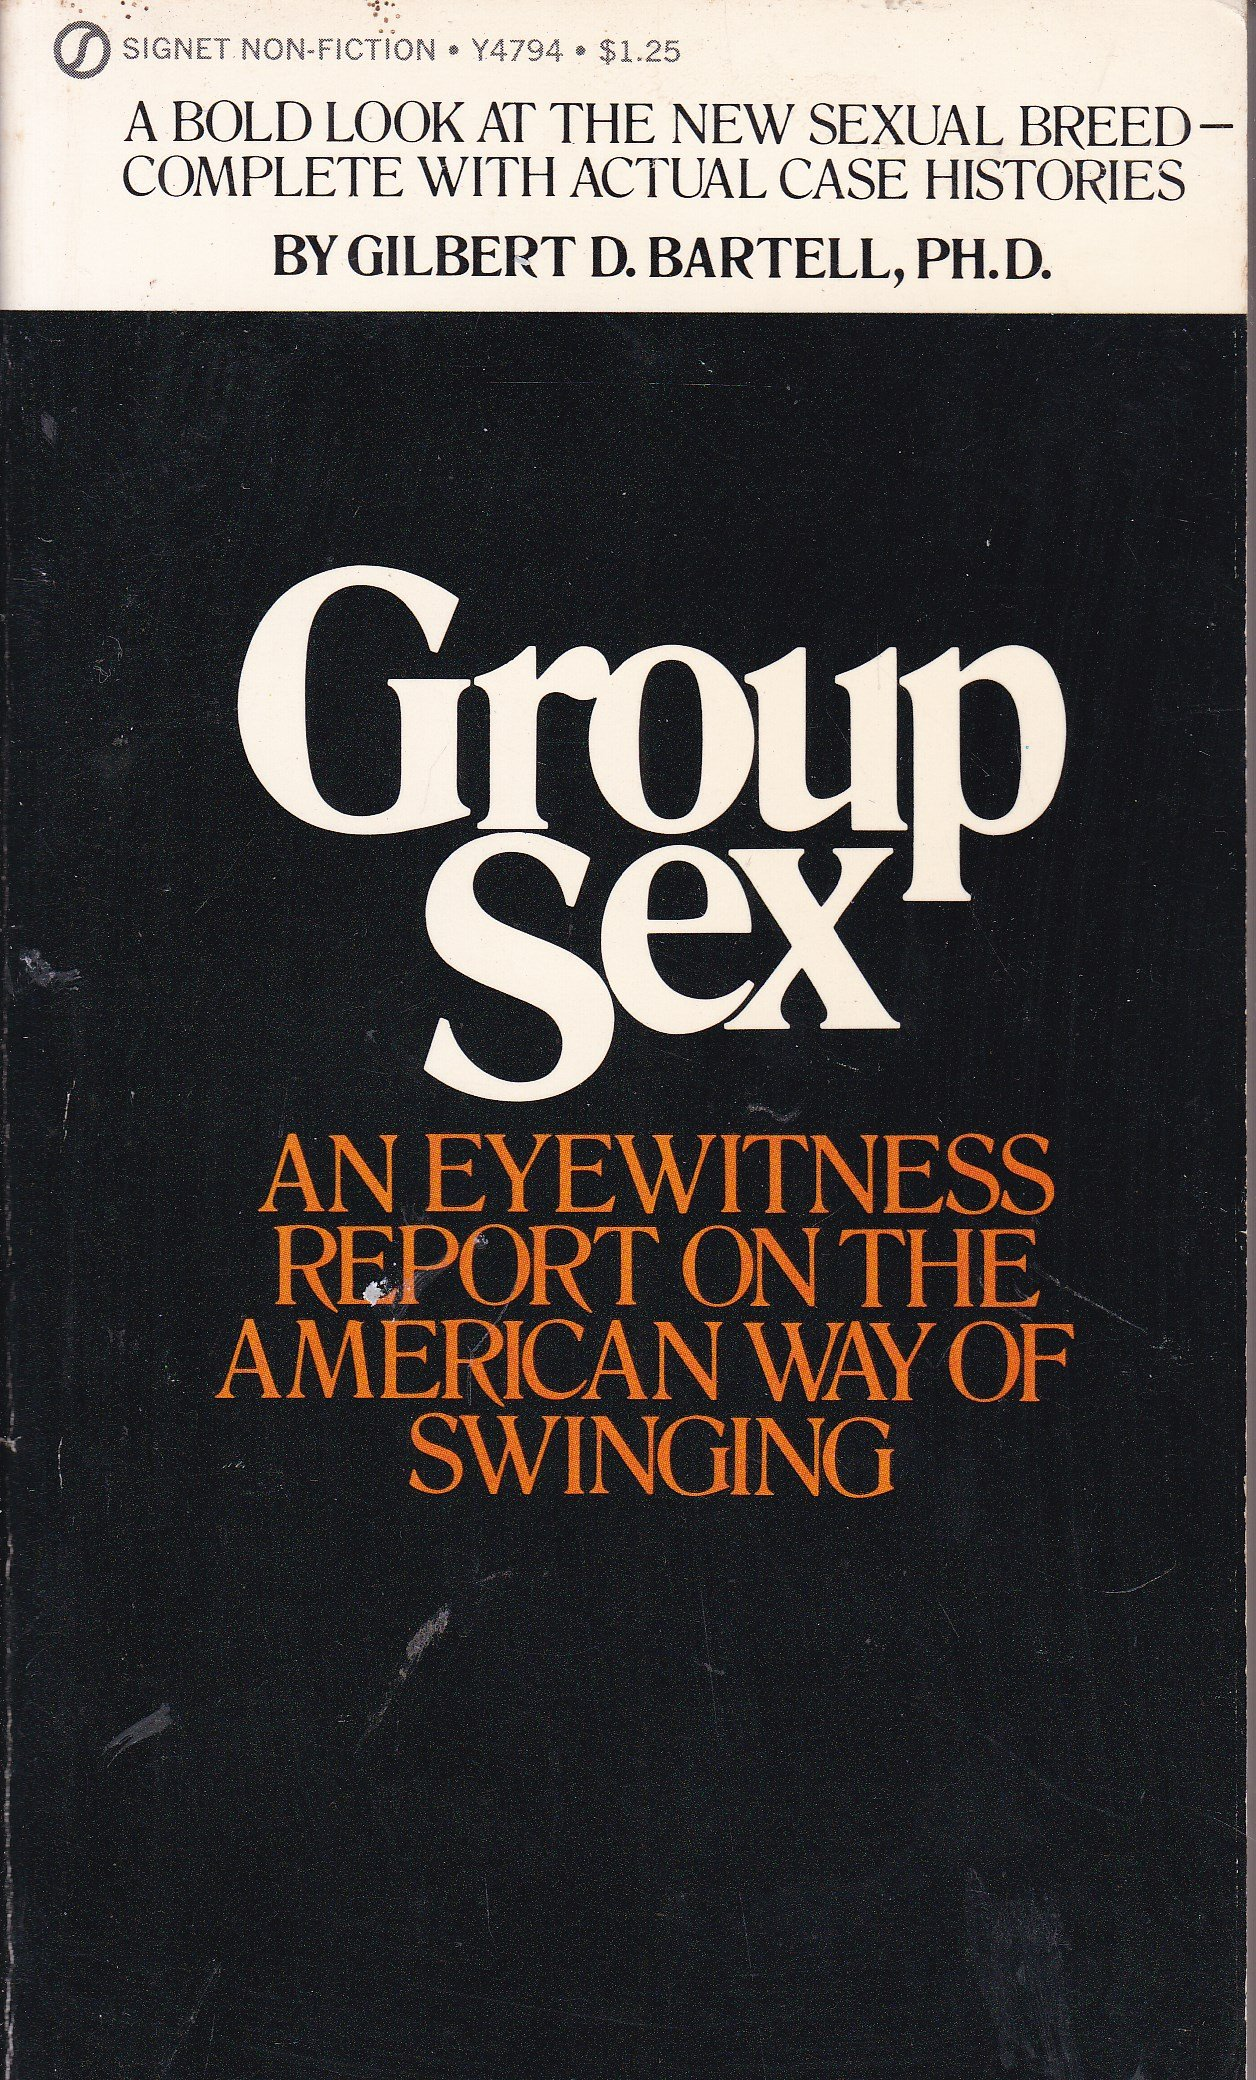 American eyewitness group report sex swinging way